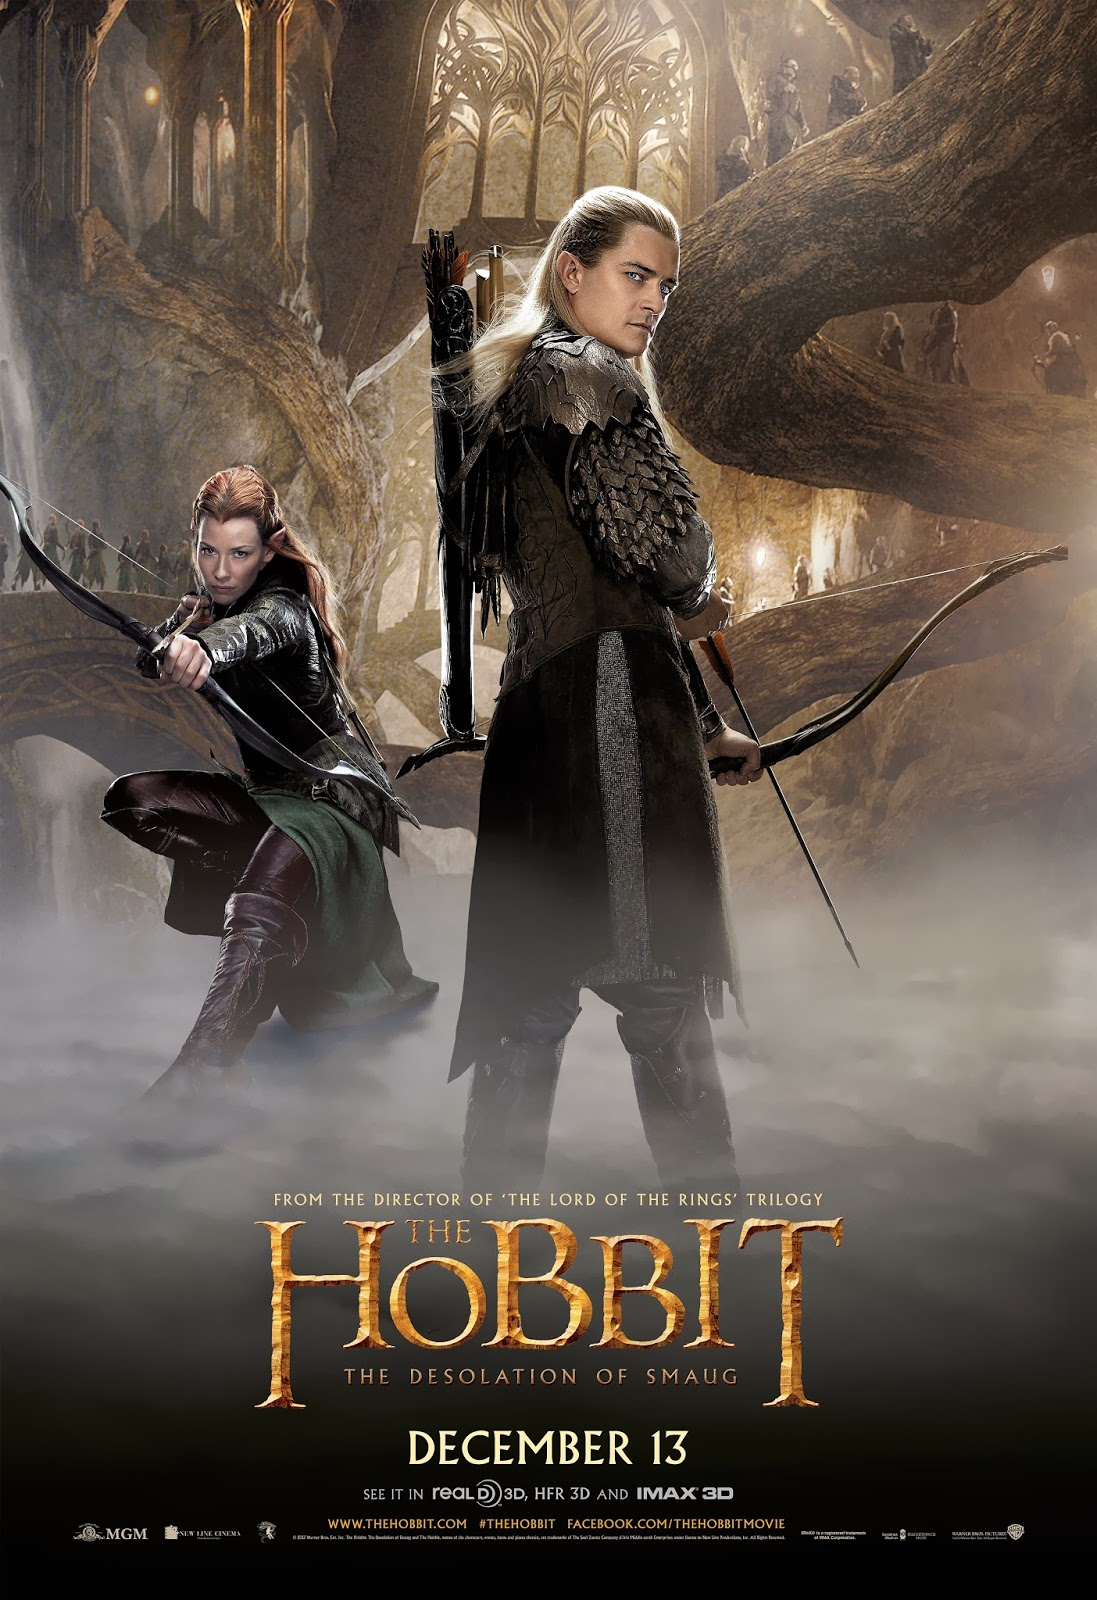 The Hobbit, Movies, Legolas, Evangeline Lilly, Orlando ... |The Hobbit The Desolation Of Smaug Legolas